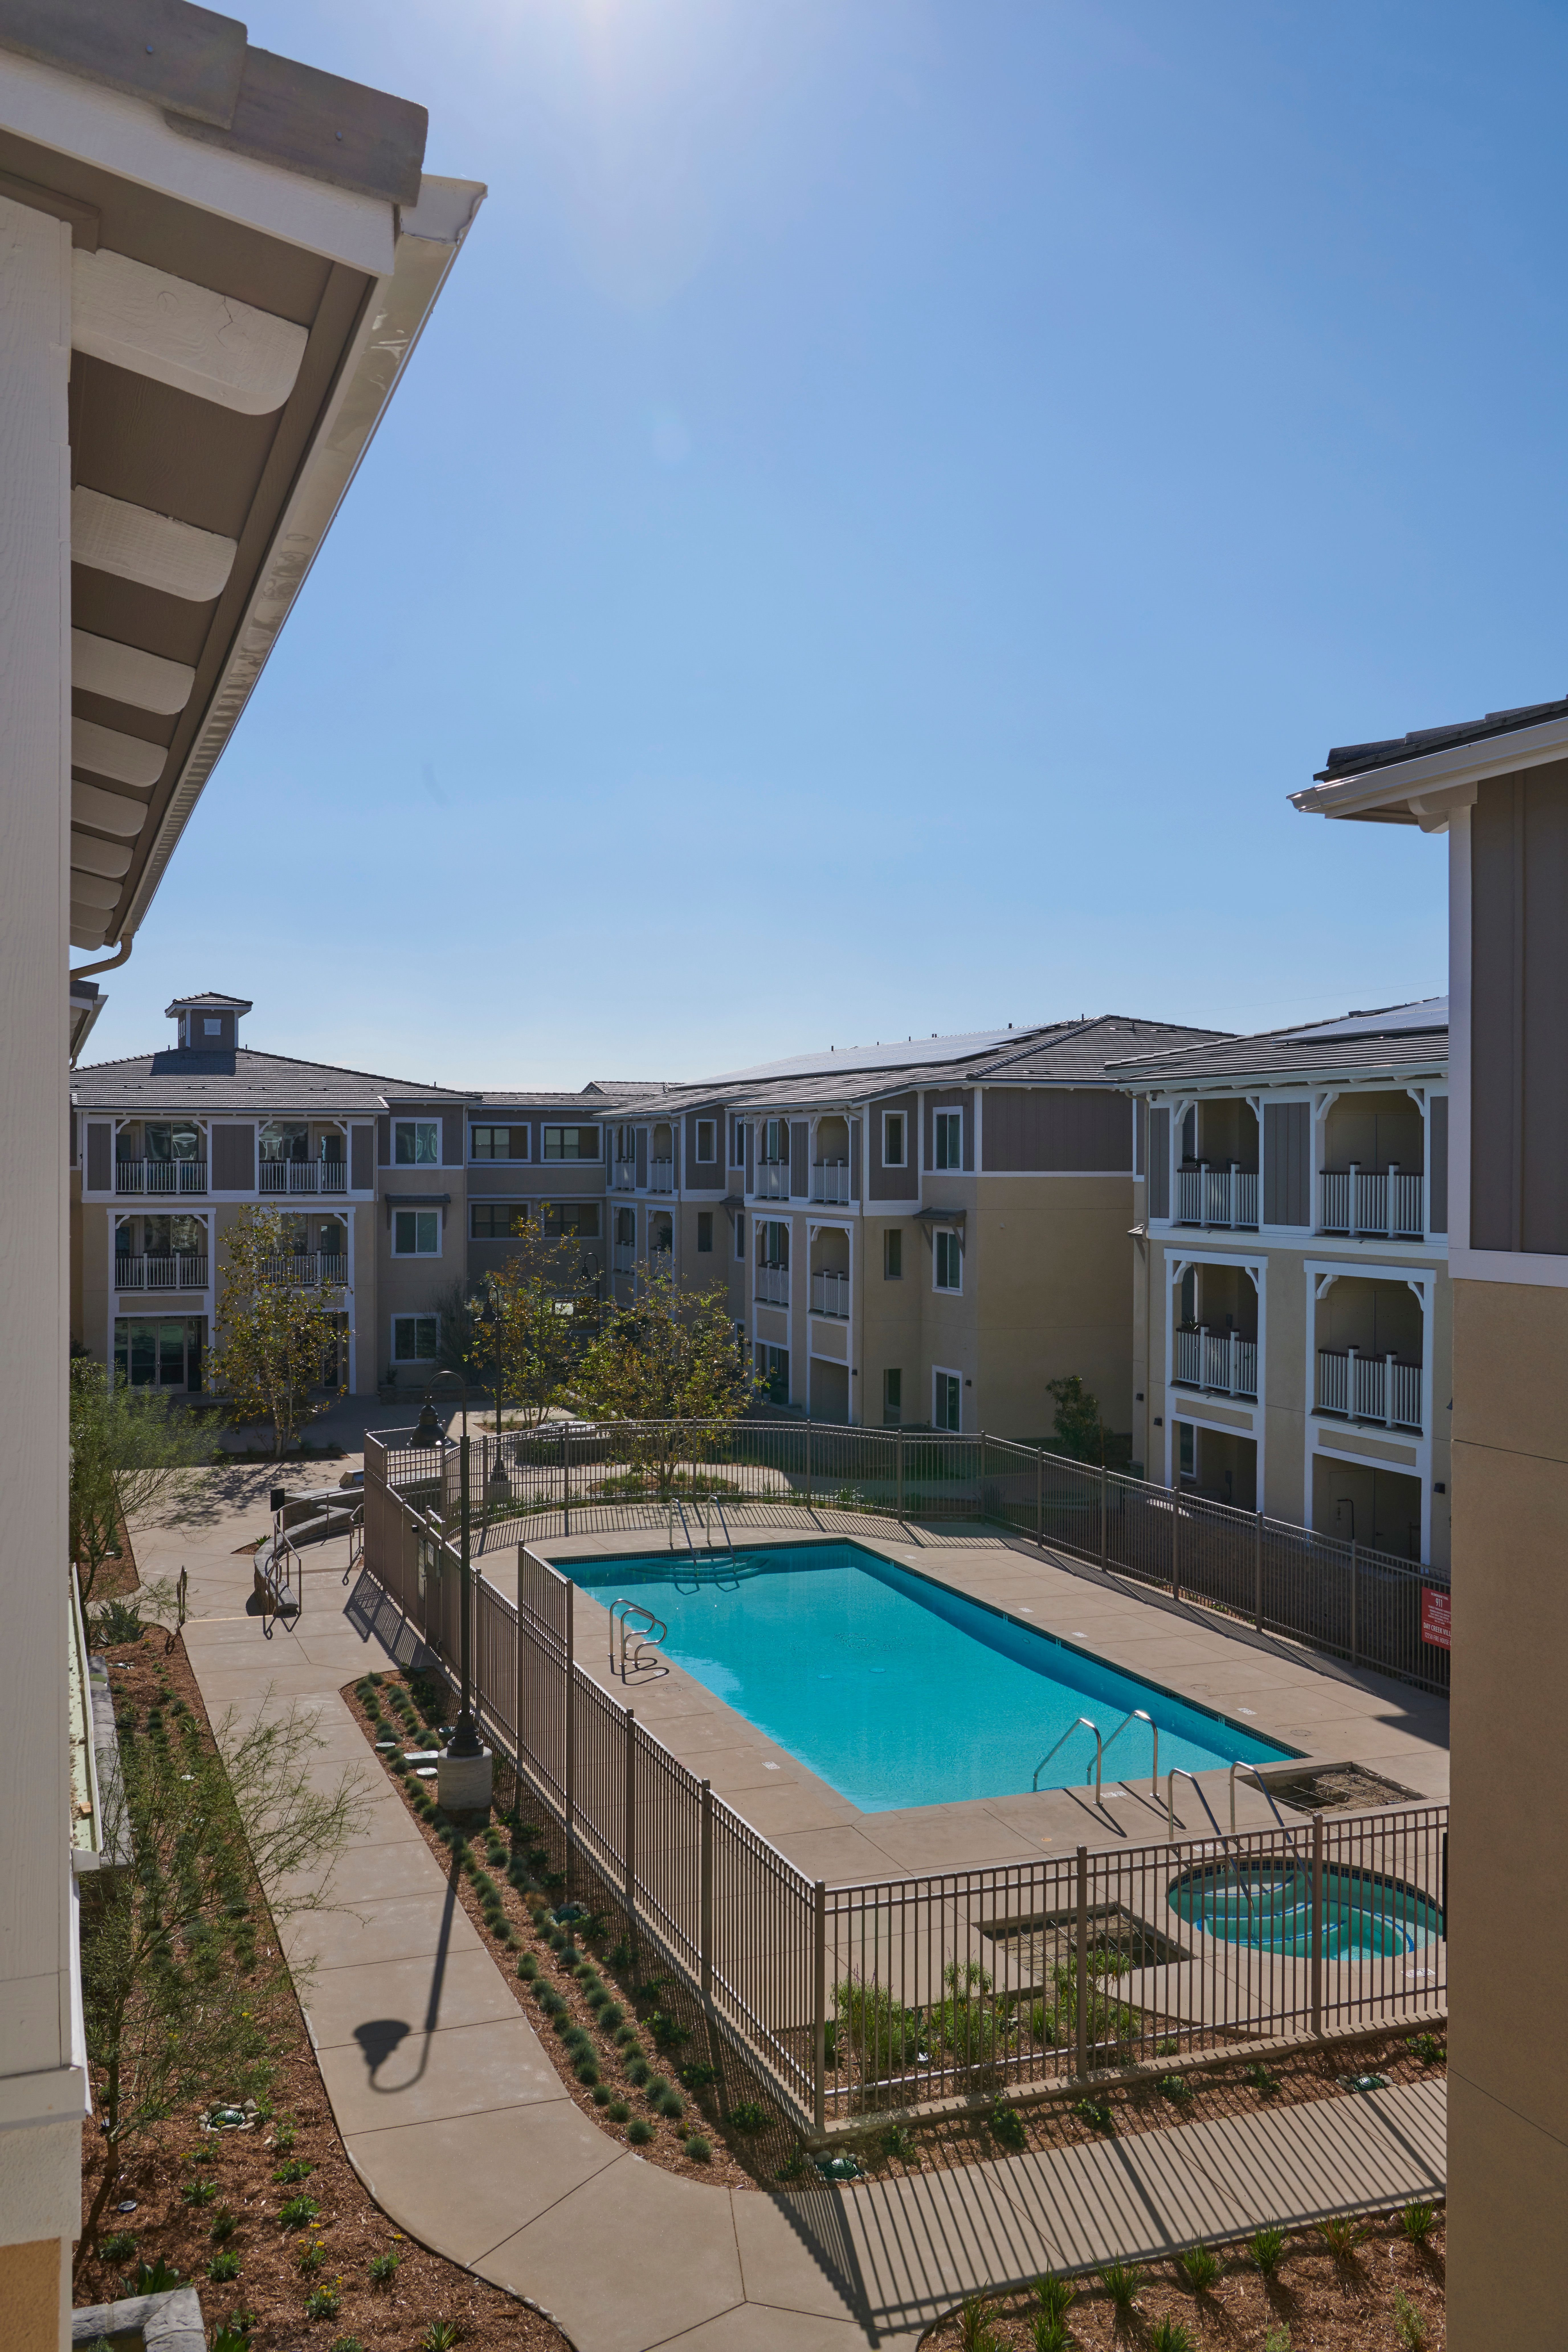 Image of Day Creek Senior Villas in Rancho Cucamonga, California